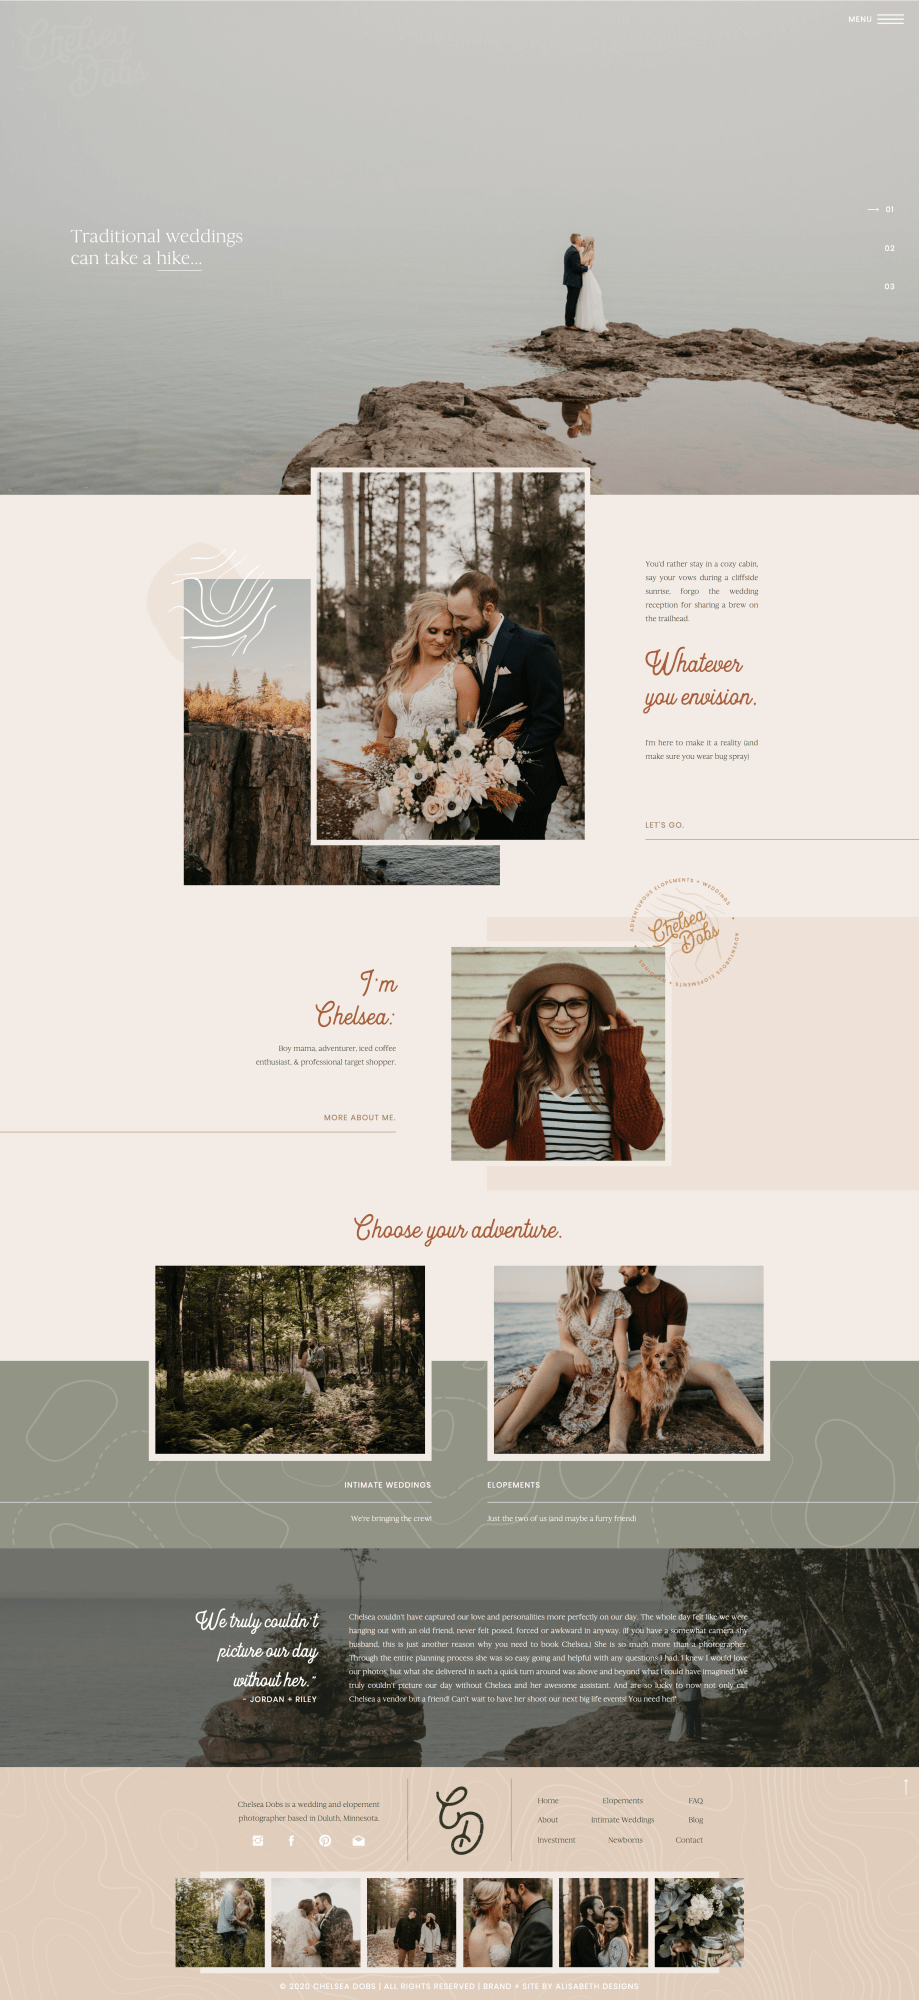 Boho Elopement Photographer Website In 2020 Custom Website Design Photographer Branding Custom Web Design